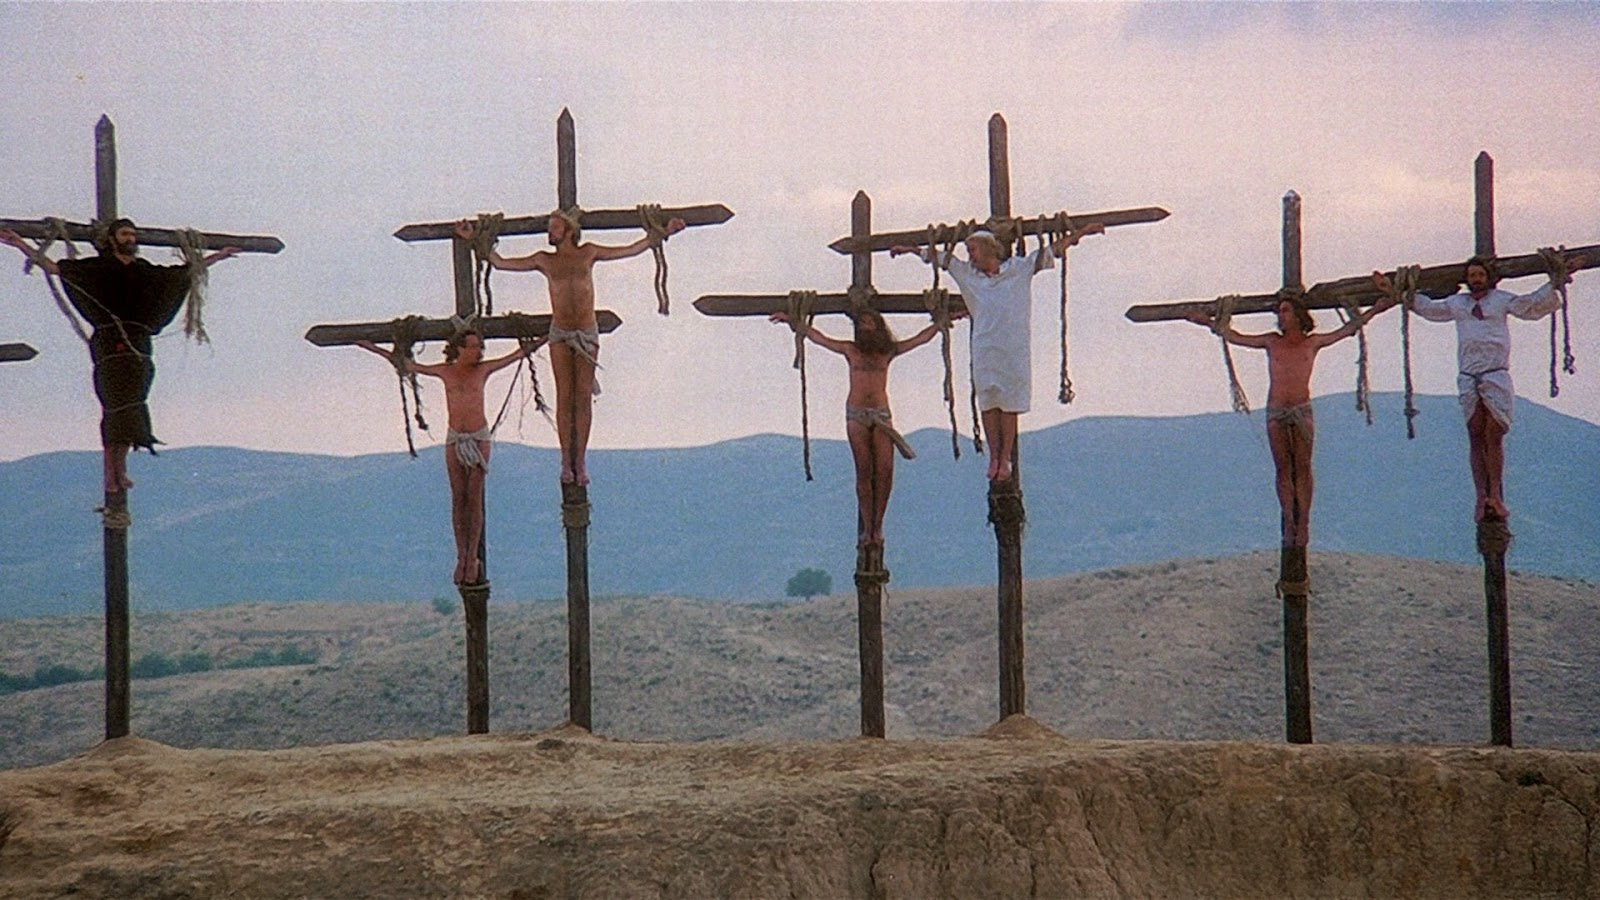 life of brian film 1979 graham chapman crucifixion always look on the bright side of life